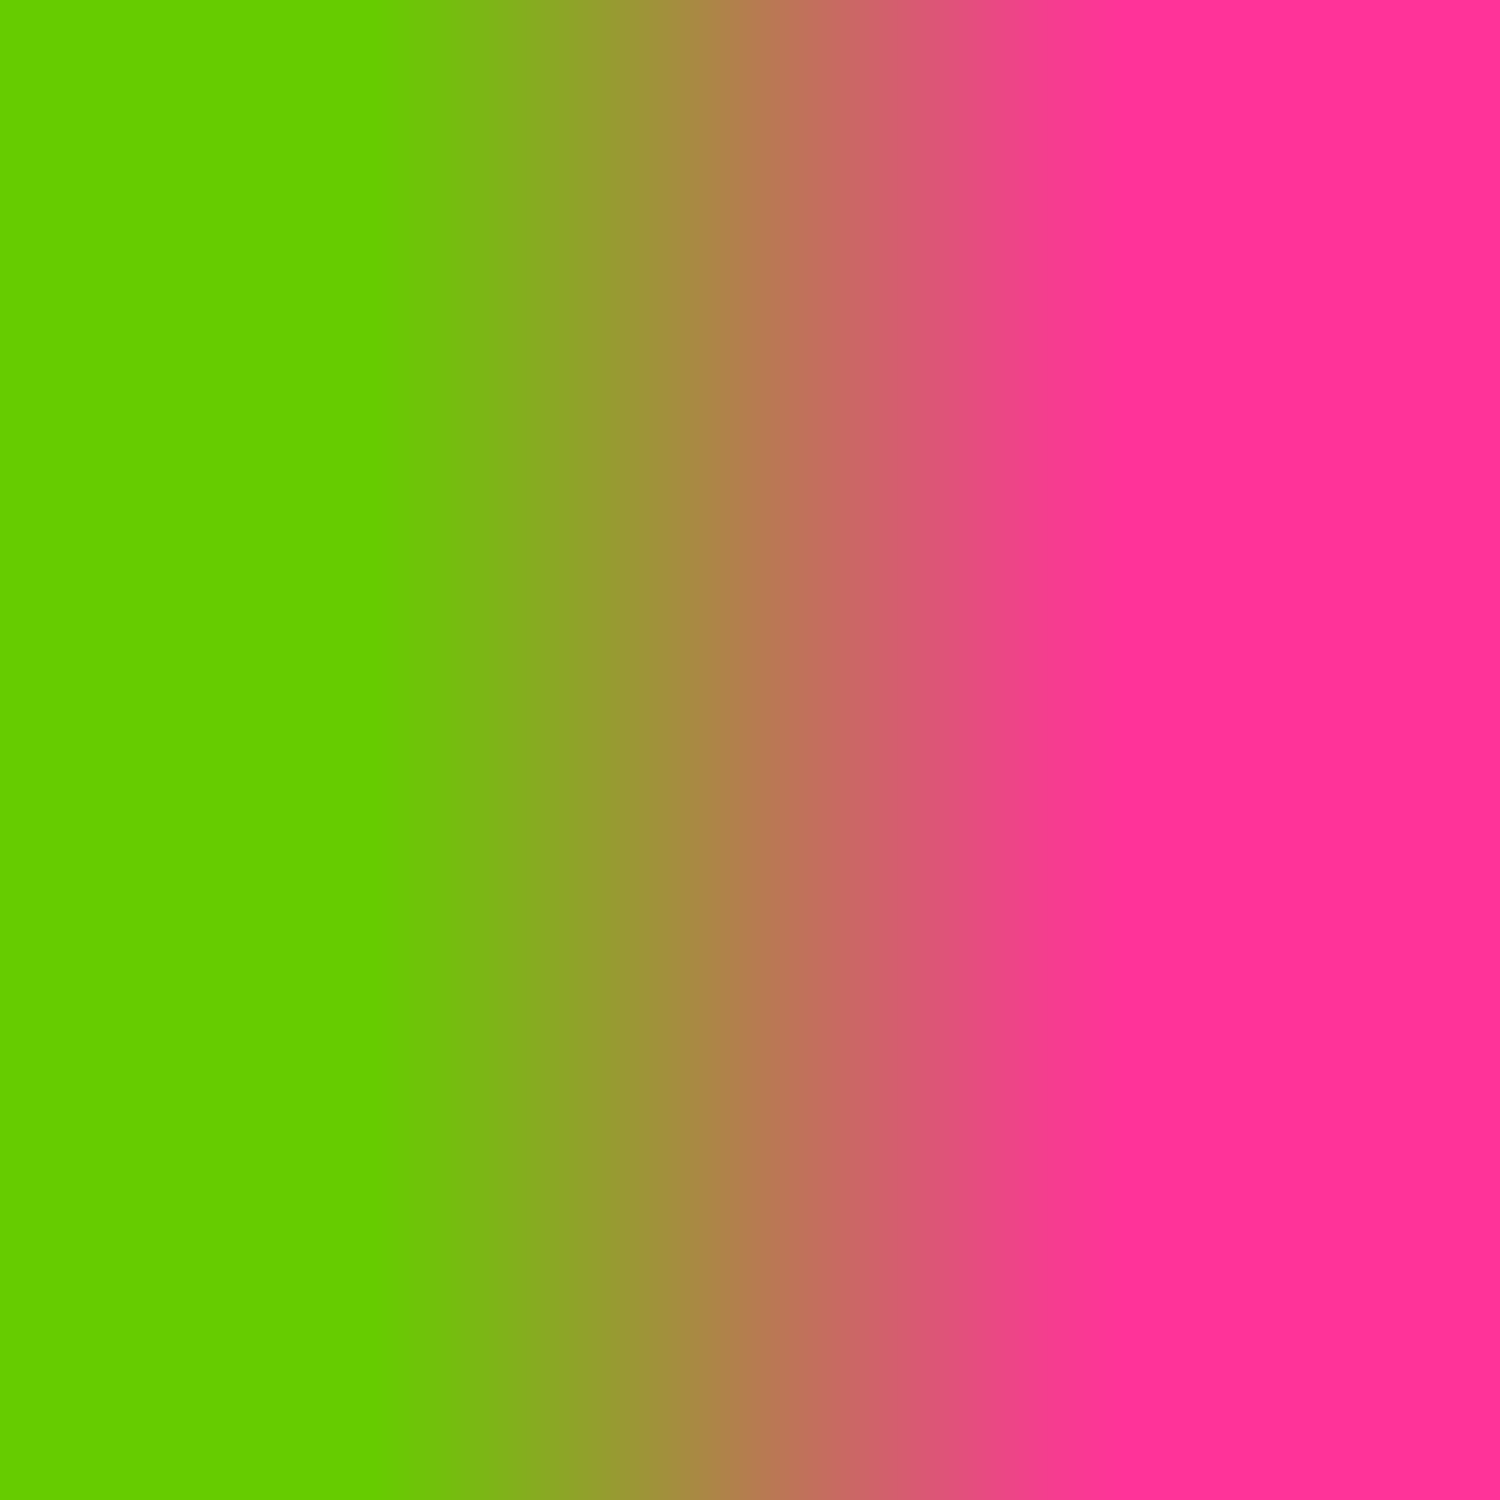 Neon green pink neon green pinterest neon - Combination of green and pink ...